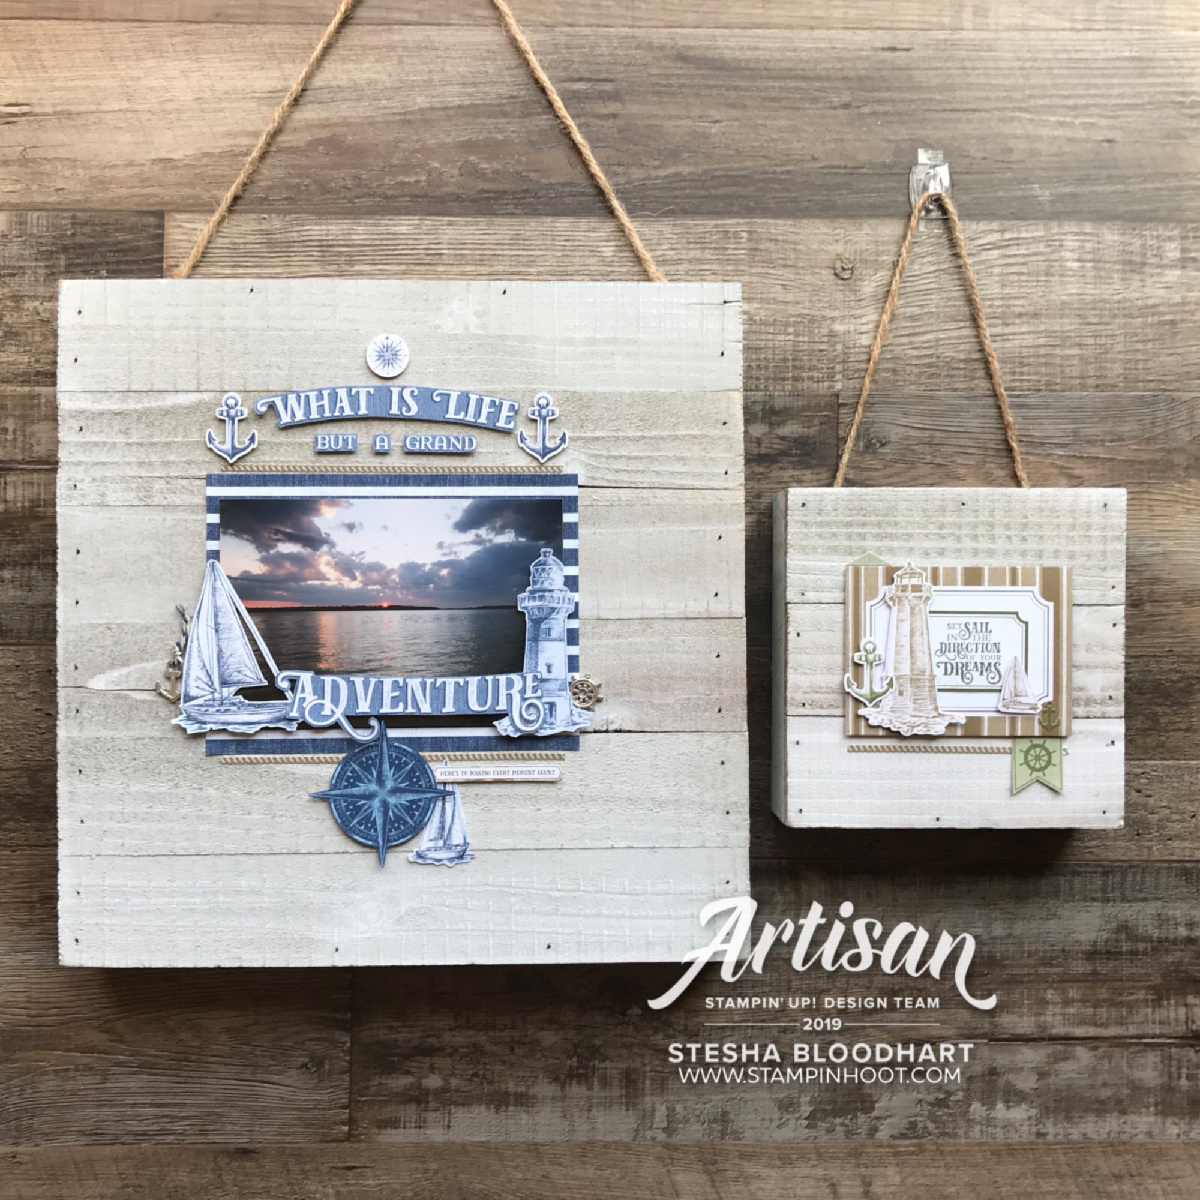 Come Sail Away Suite of Products by Stampin' Up! Home Decor by Stesha Bloodhart, Stampin' Hoot! 2019 Artisan Design Team